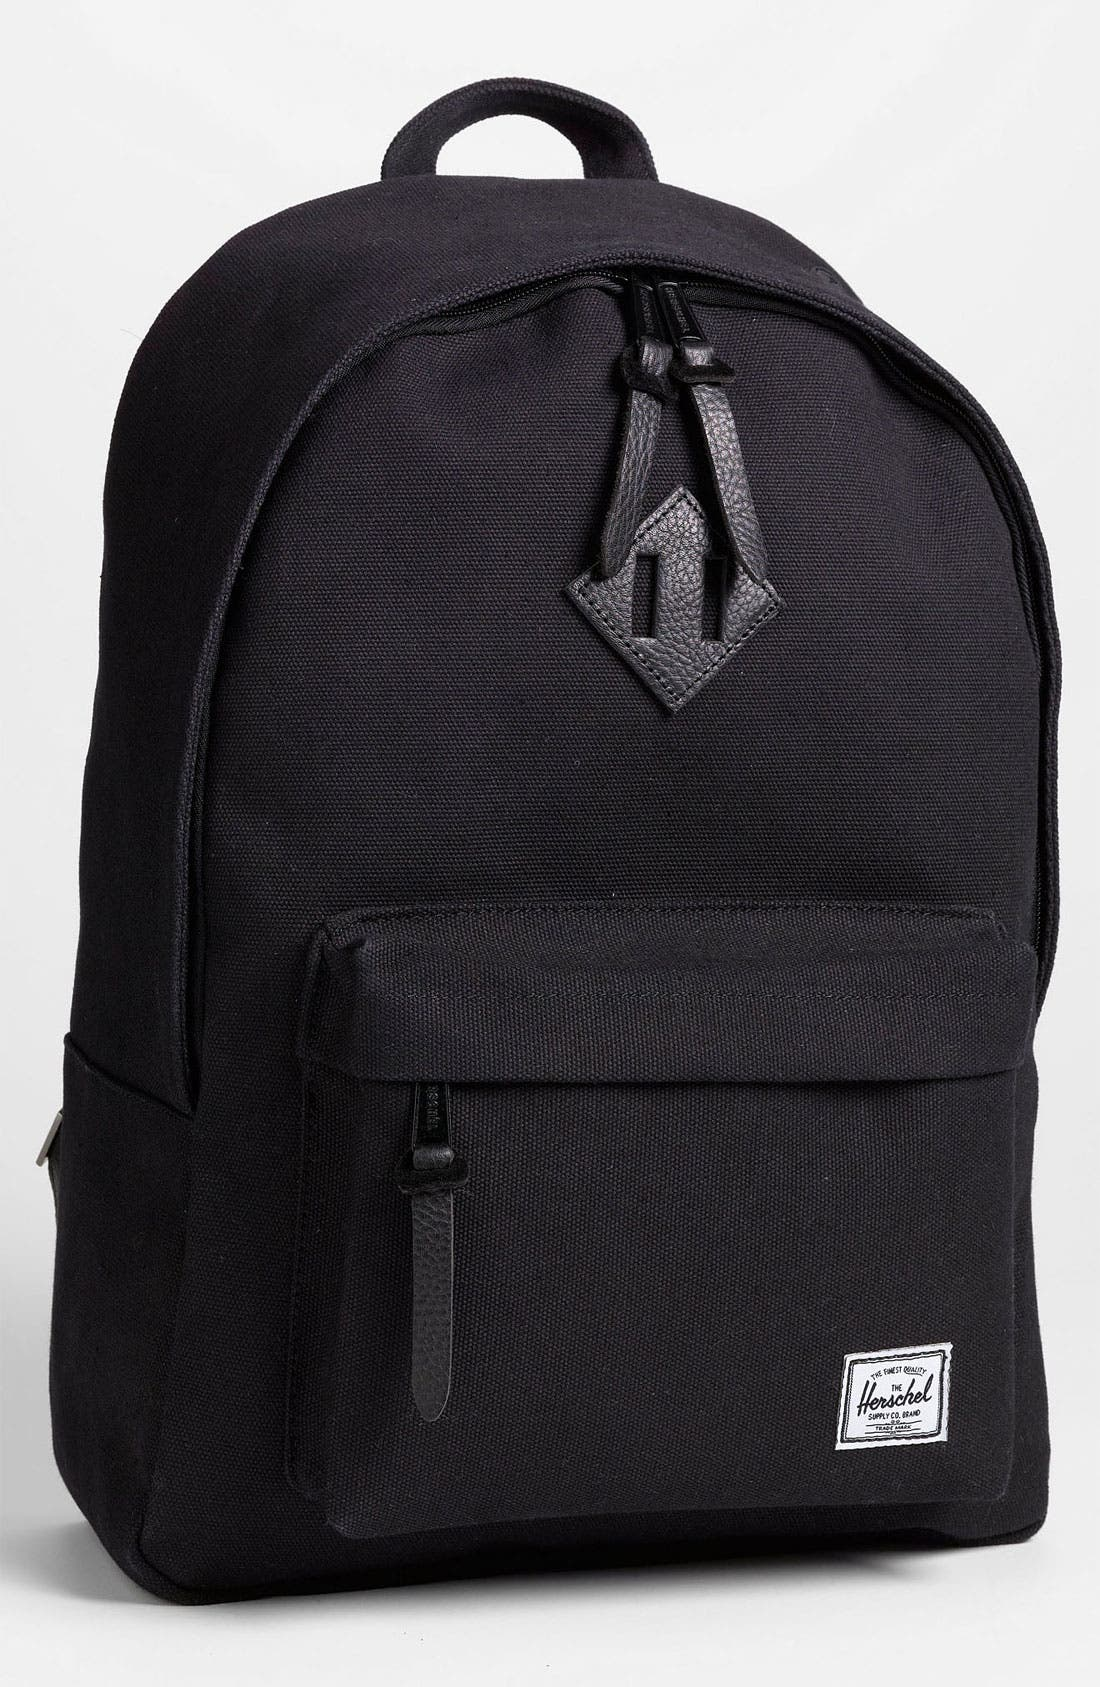 Main Image - Herschel Supply Co. 'Woodlands' Backpack